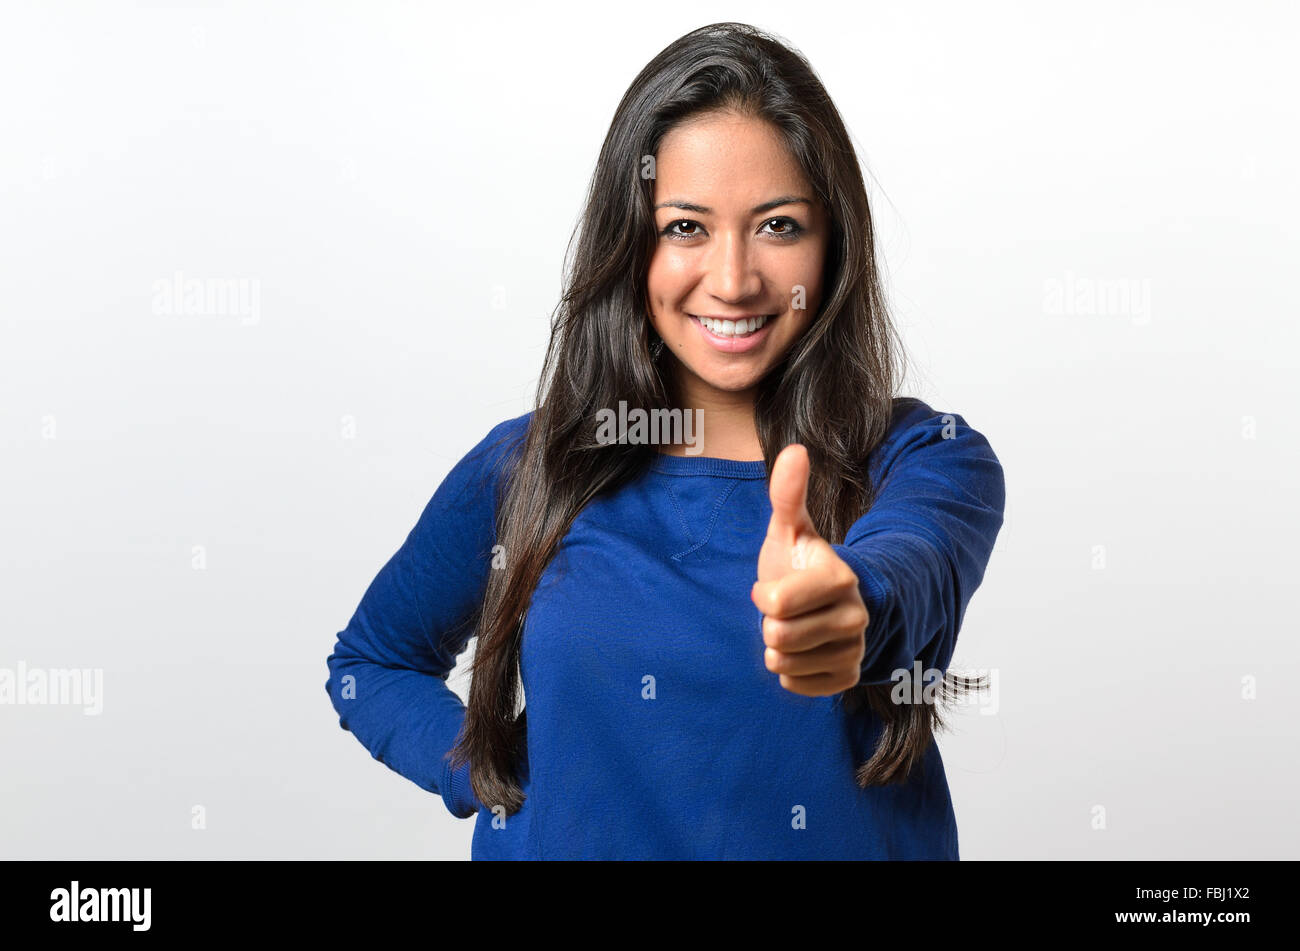 Enthusiastic motivated attractive young woman giving a thumb up gesture of approval and success with a beaming smile - Stock Image